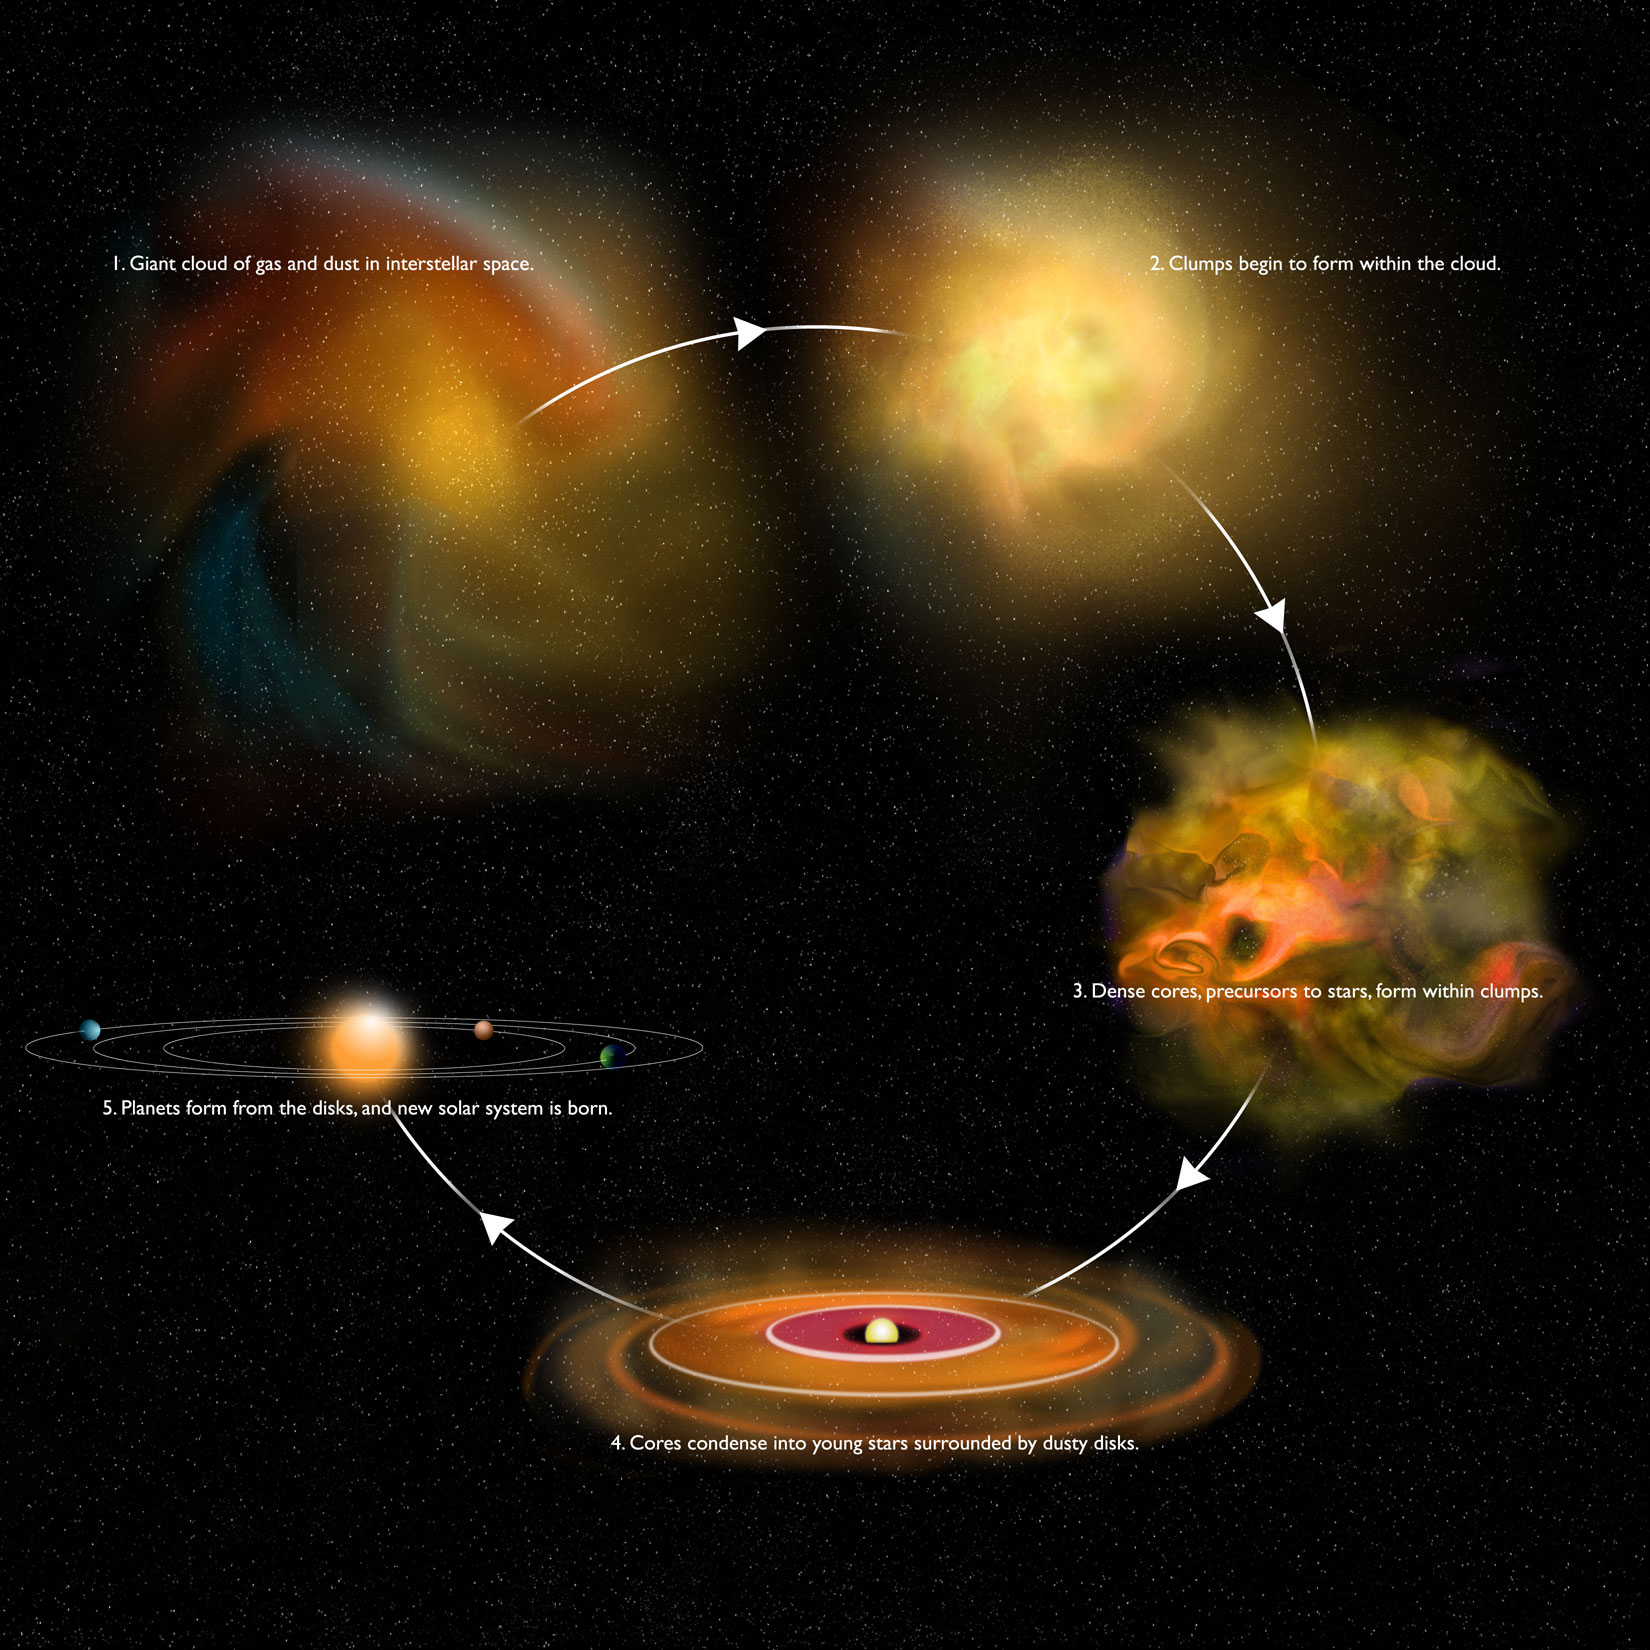 Astronomers get rare peek at early stage of star formation ccuart Gallery